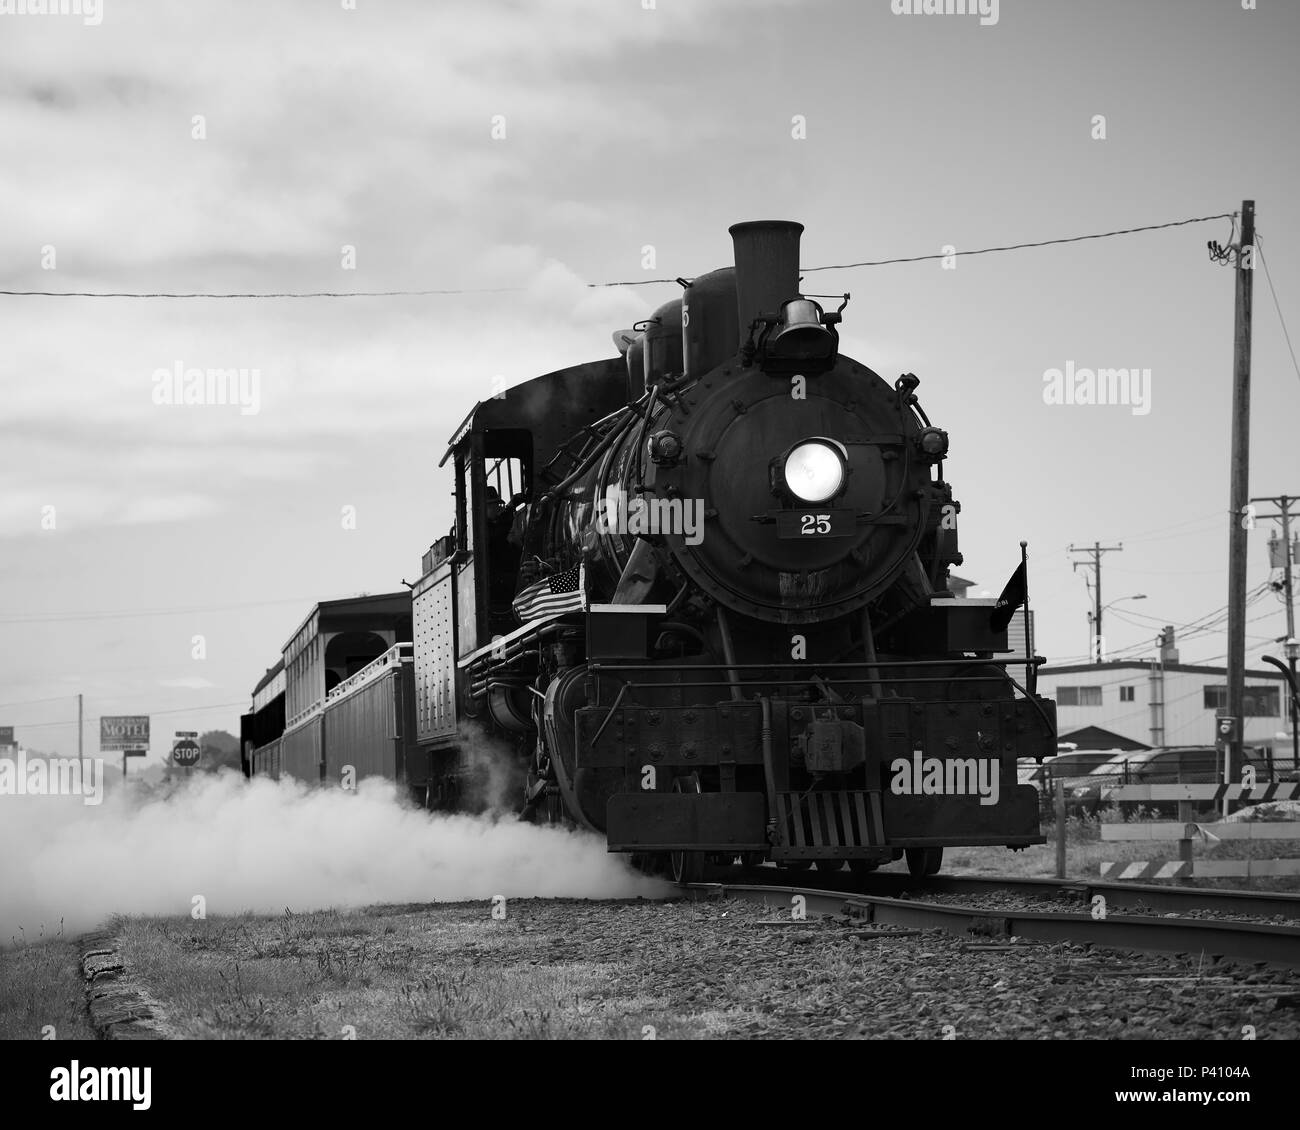 Steam vents from the old locomotive operated by the Oregon Coast Scenic Railway at its destination in Rockaway Beach - Stock Image